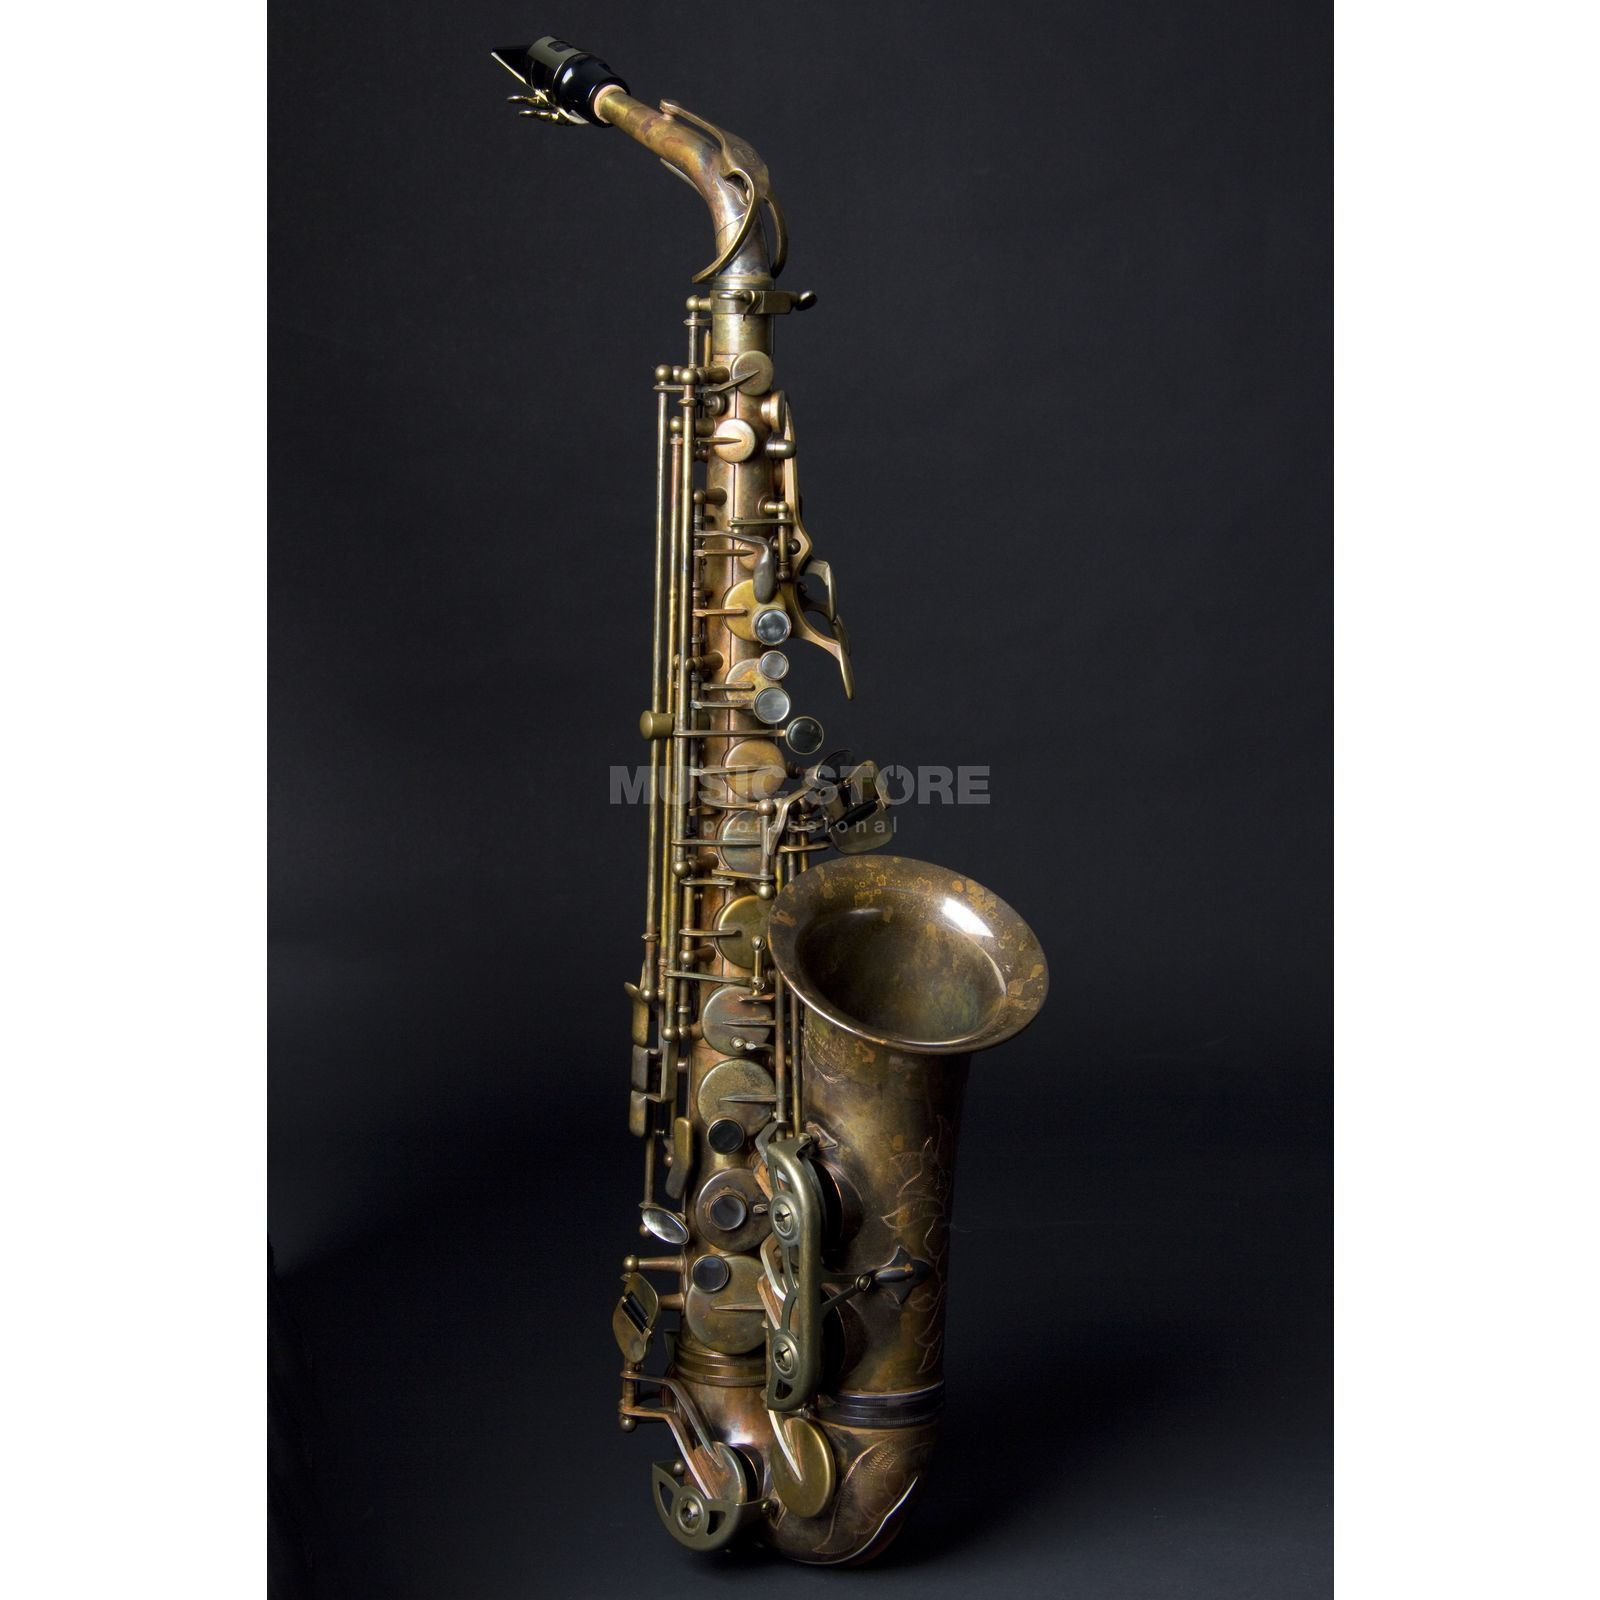 Expression X-Old Es Alto Saxophone - Bronze unlacquered Product Image